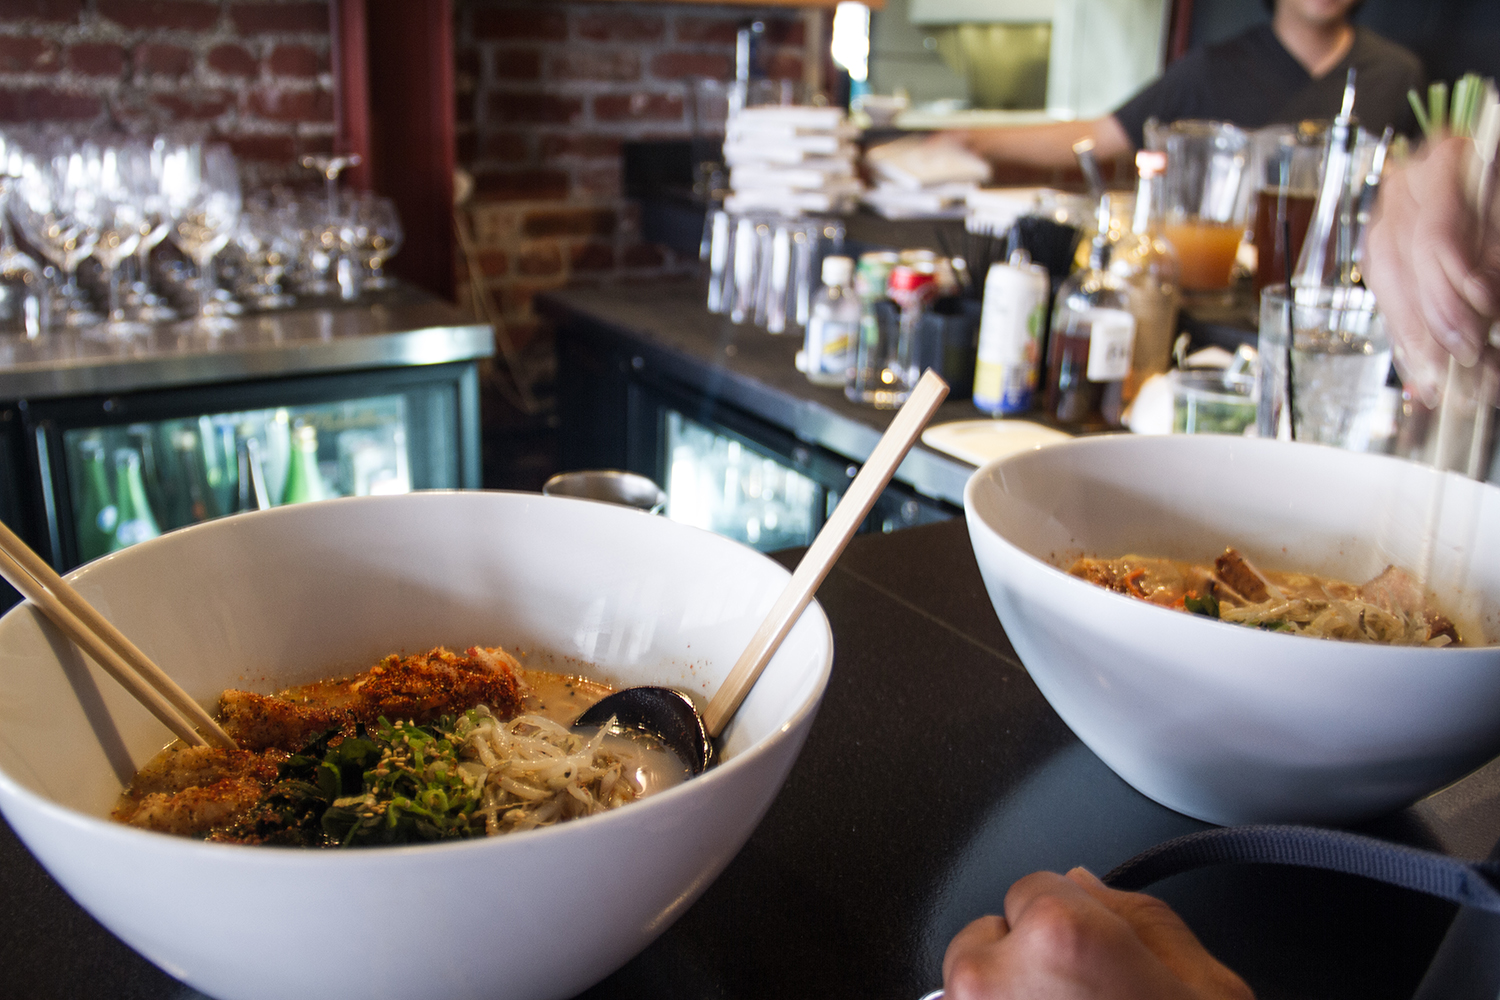 The shrimp kimchee & the Belly Bowl ramen at Lucky Belly. So good!